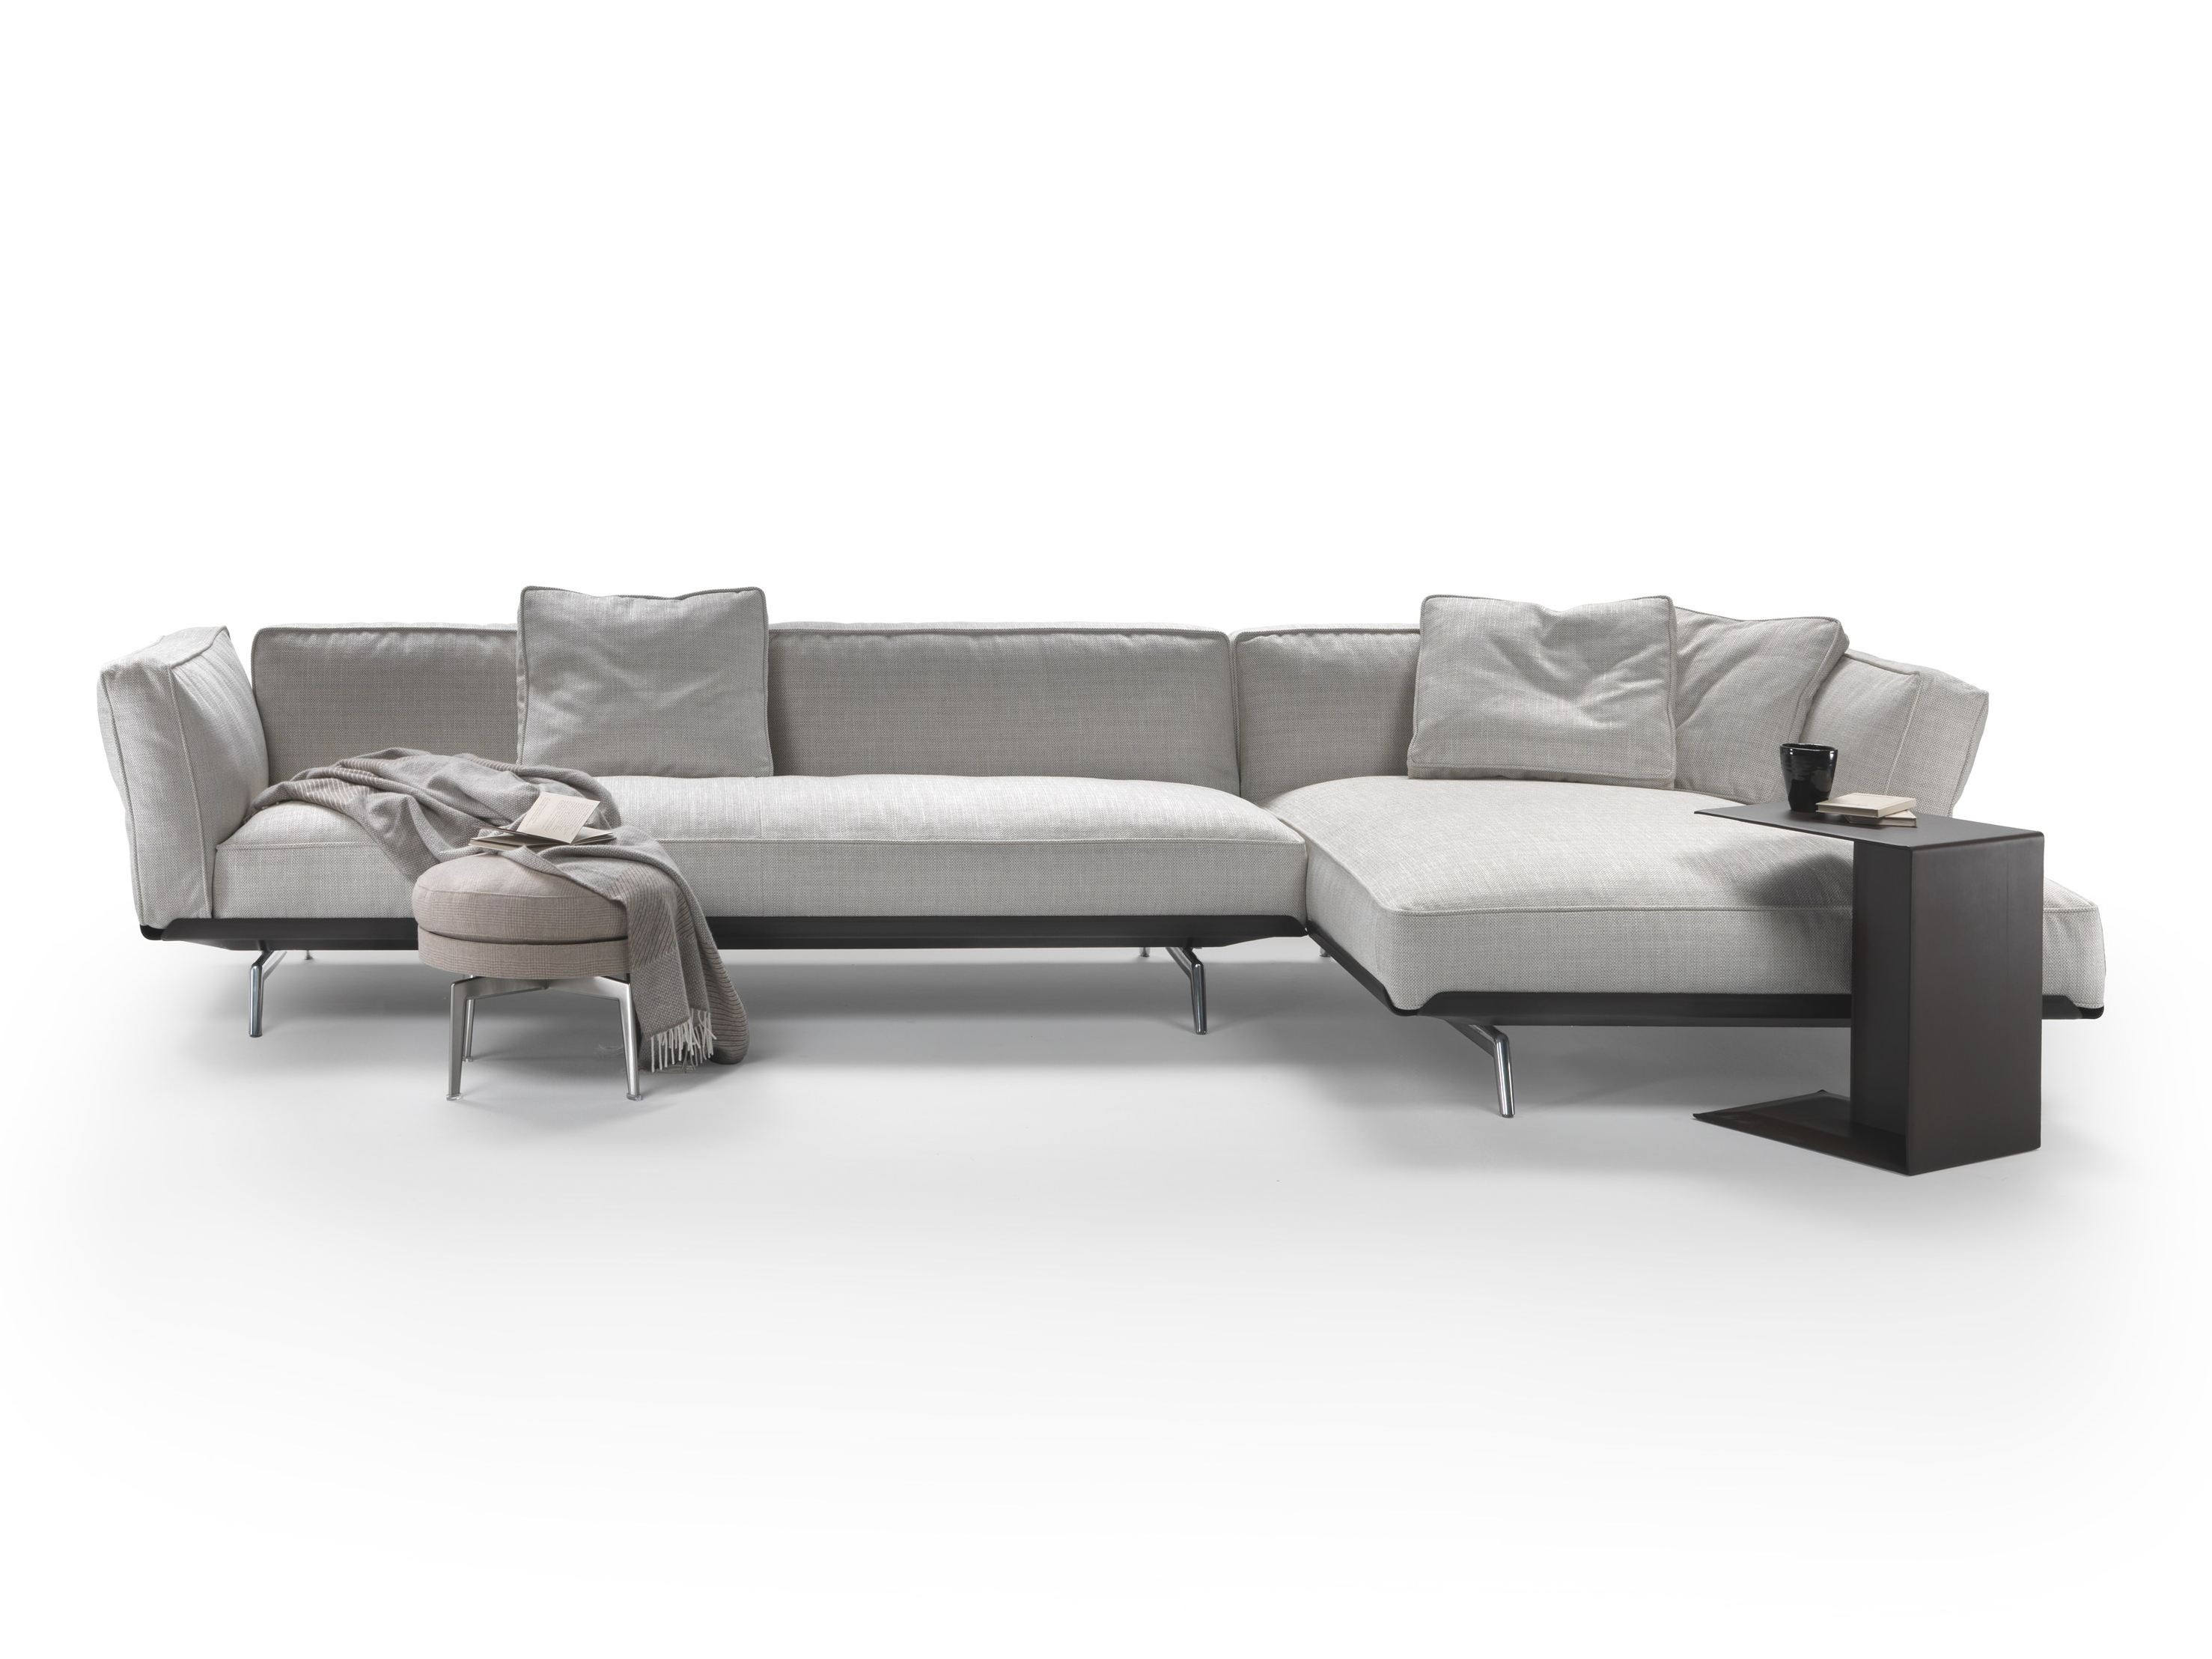 Antonio Citterio City Sofa Este